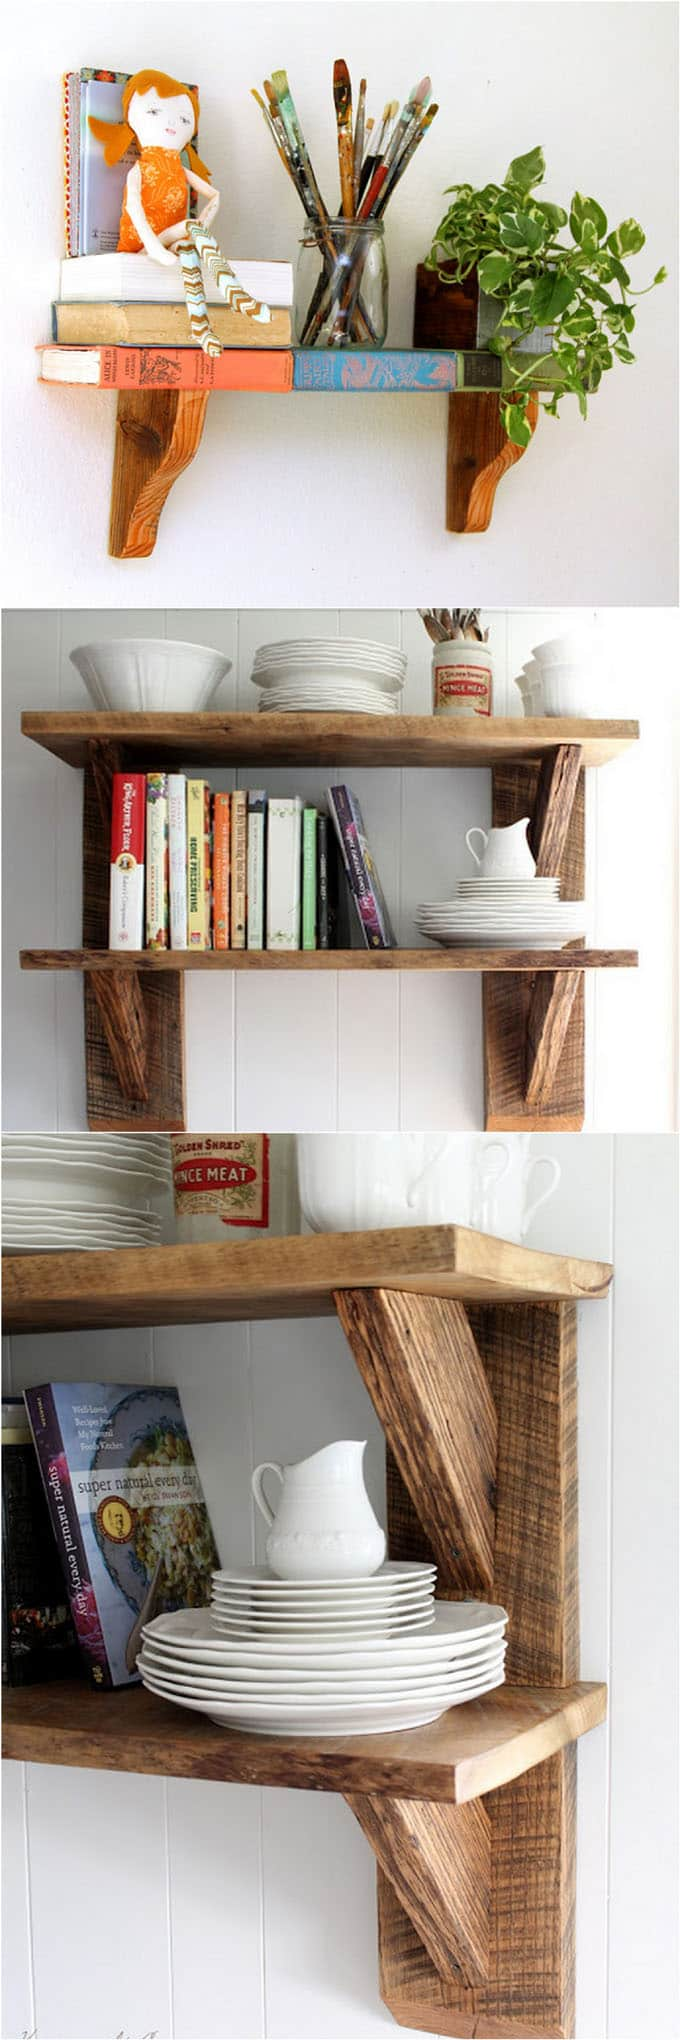 16 Easy And Stylish DIY Floating Shelves Wall Shelves Page 2 Of 2 A